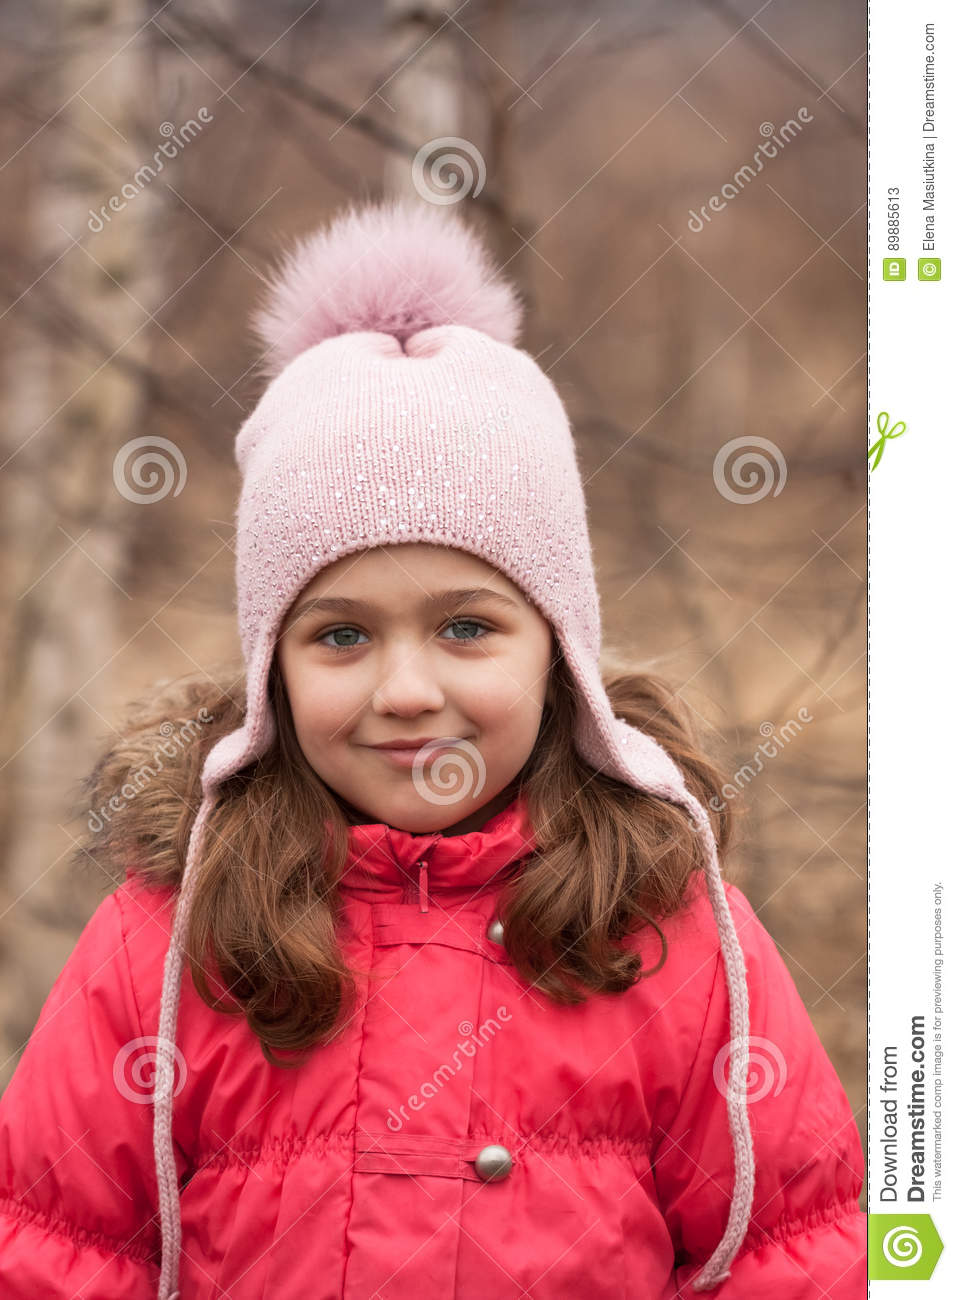 Little Girl In Bright Red Jacket And Knitted Pink Cap On Spring